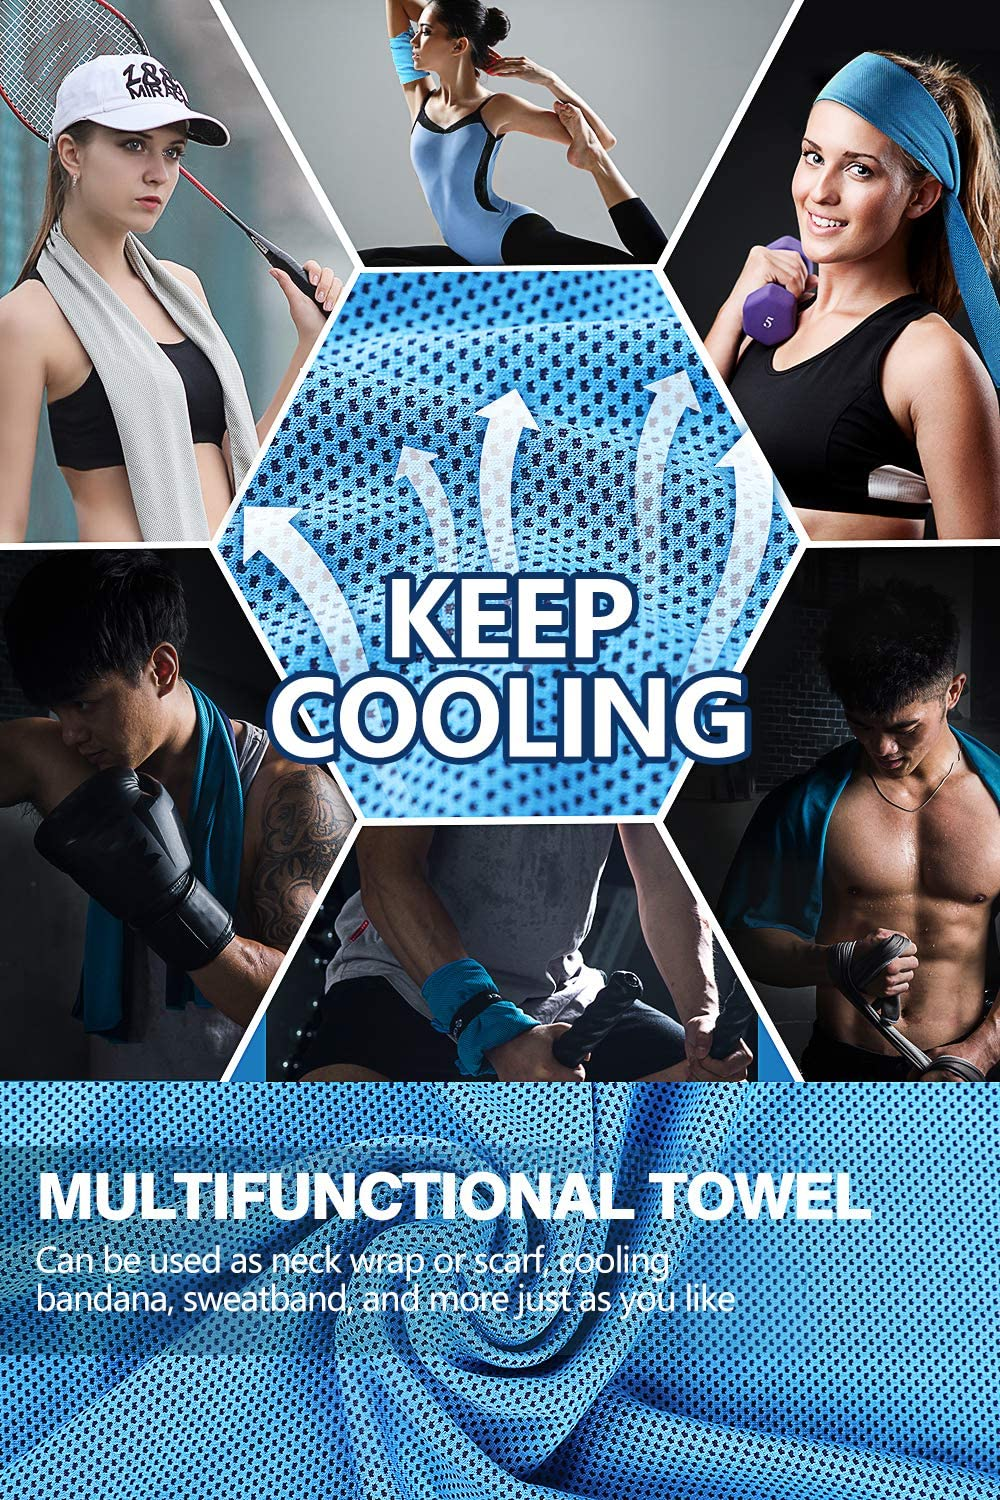 Instant Cool Towel Sport Cooling Neck Wraps for Summer Soft Breathable Chilly Towel for Yoga Cooling Towel for Neck 5 Packs Workout Gym Fitness 40x12 Running Cooling Towel Camping